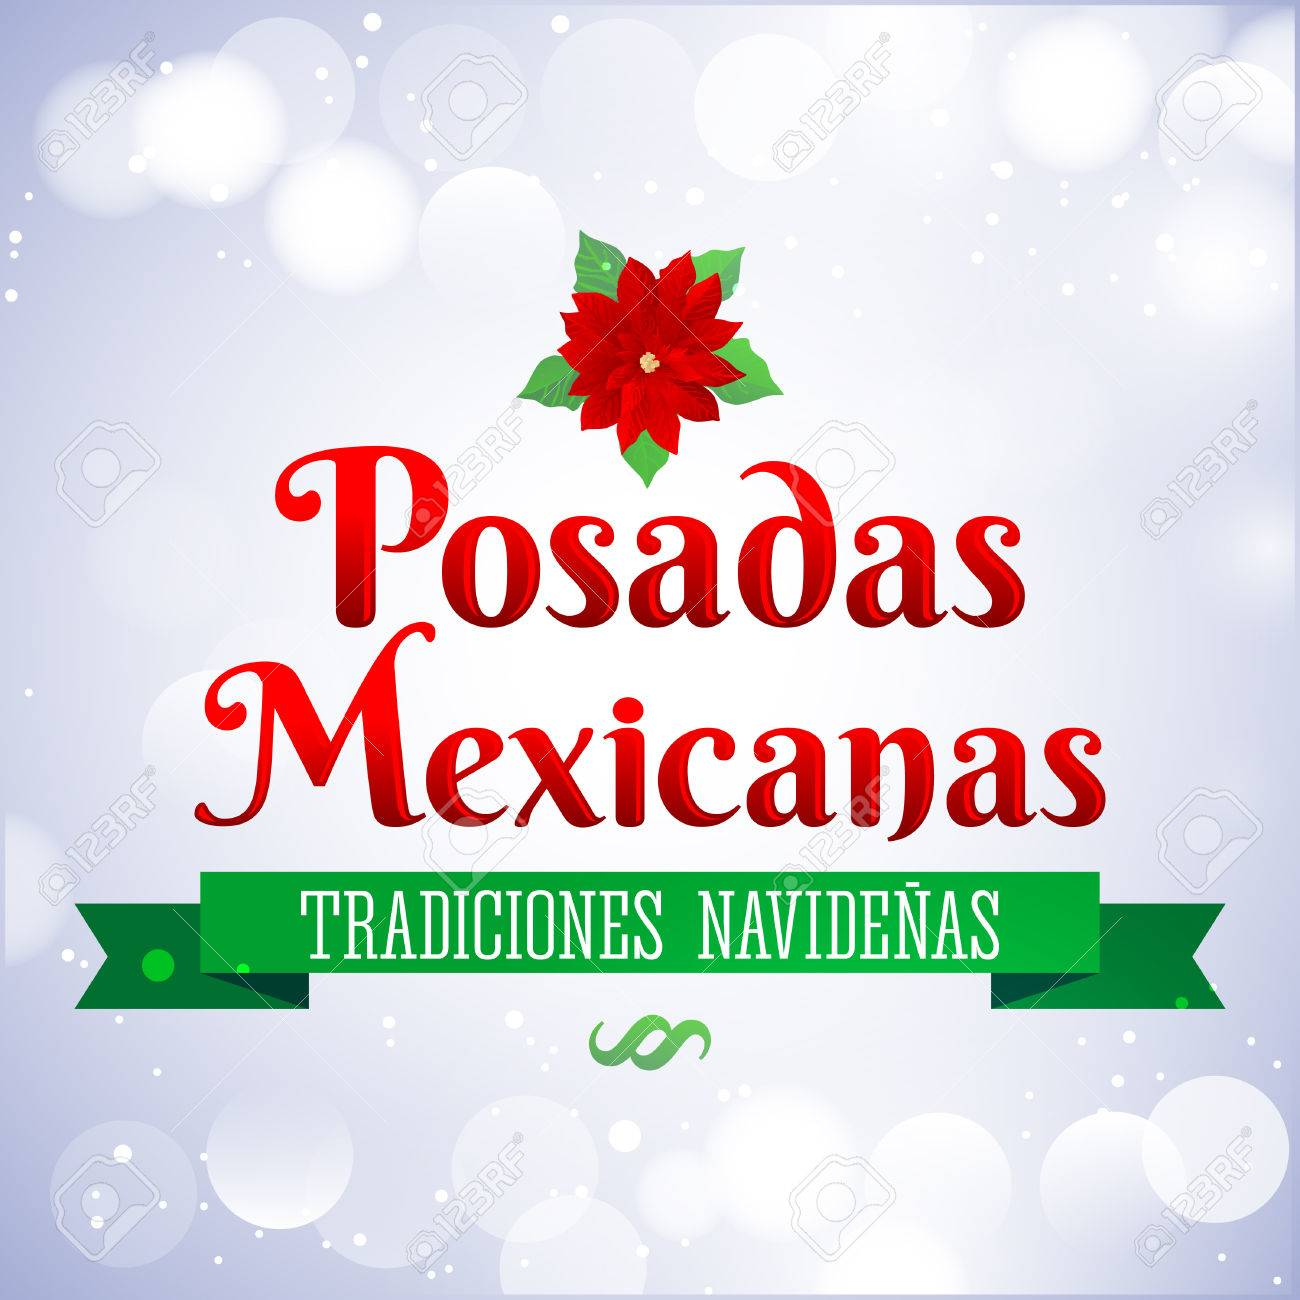 Christmas In Spanish.Posadas Mexicanas Christmas Lodging Spanish Text Posadas